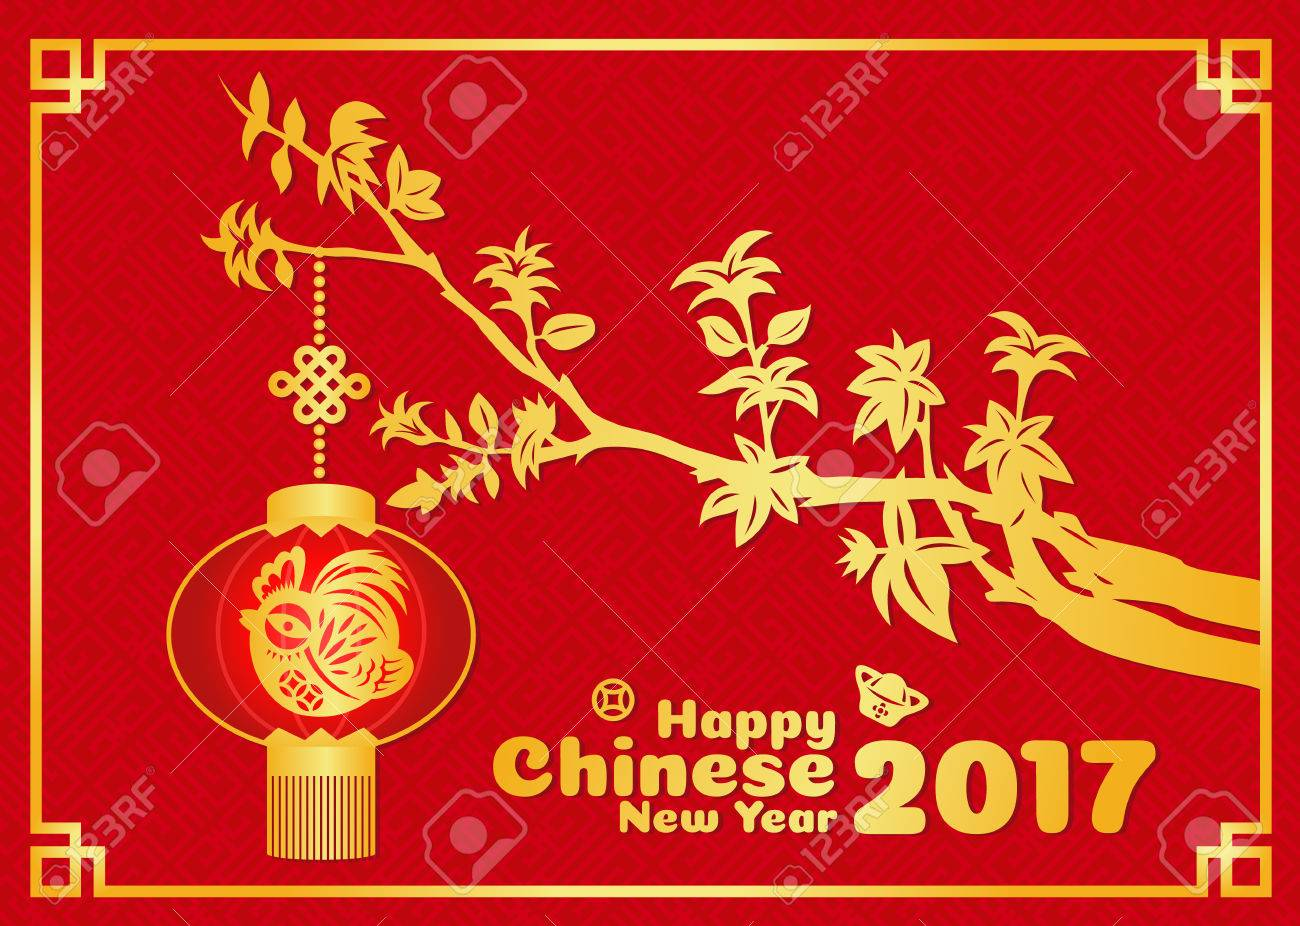 Happy Chinese New Year 2017 Card Is Gold Chicken Paper Cut In